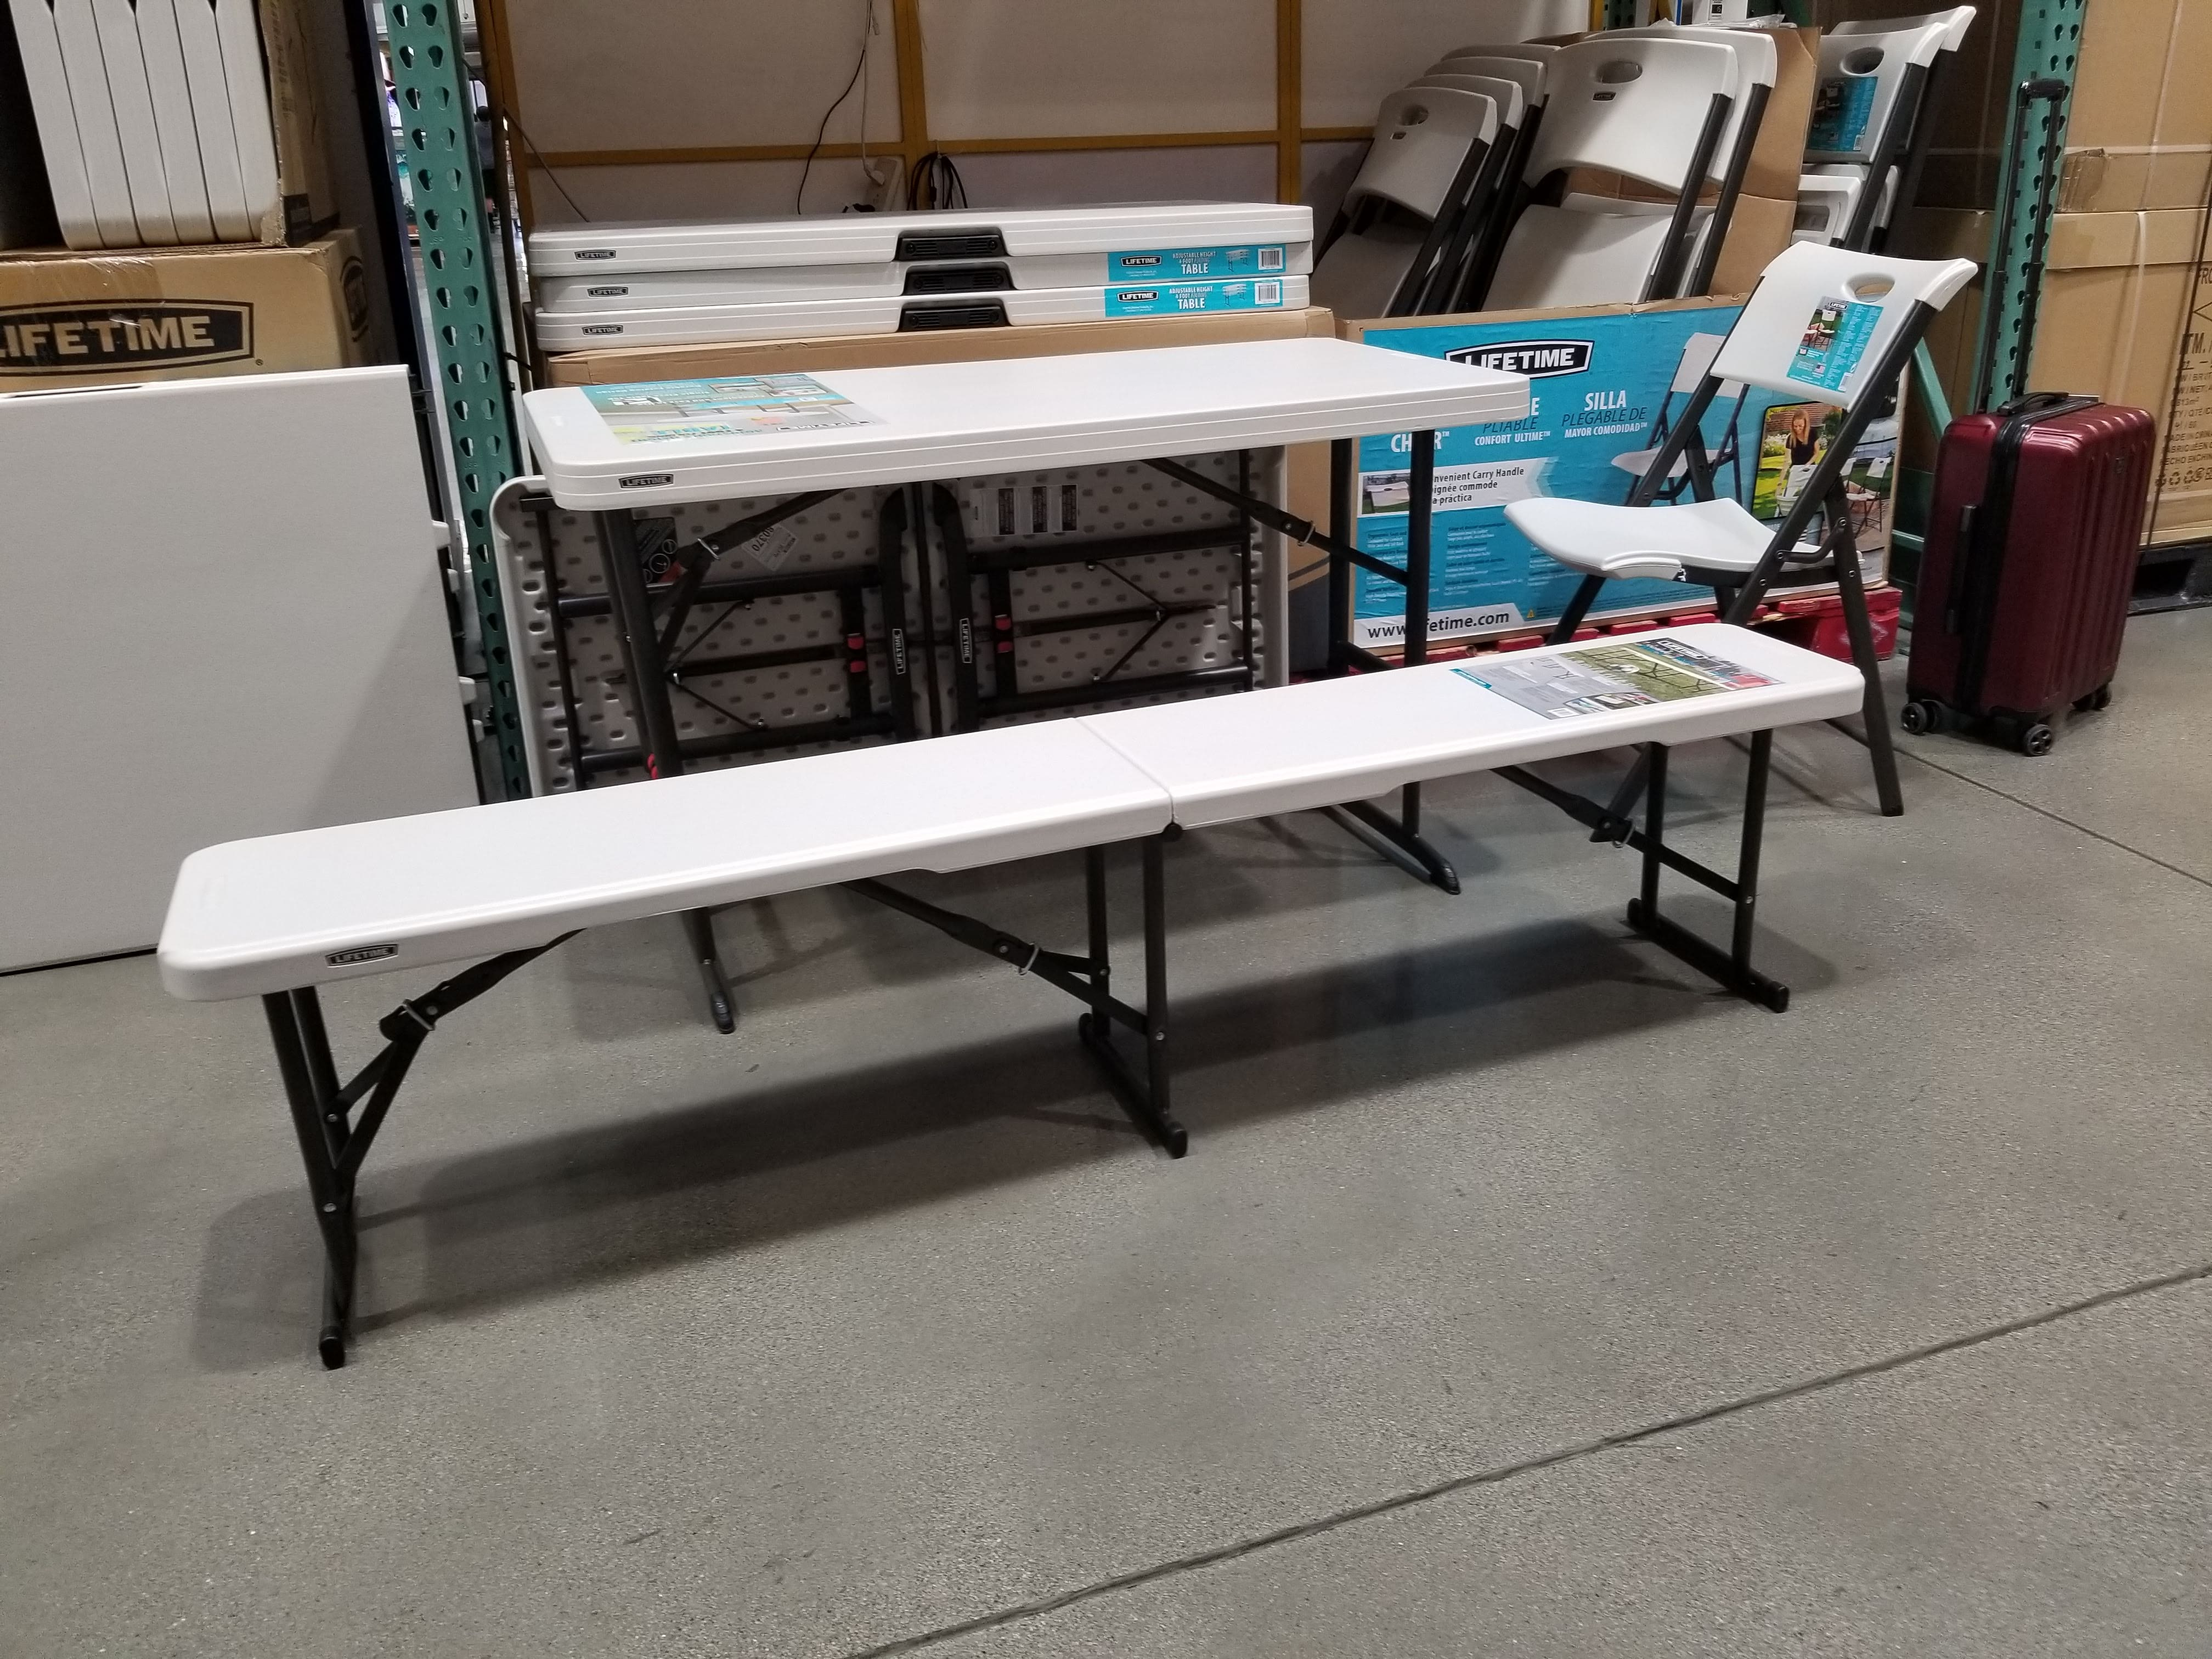 Lifetime 6' foot Fold-in-Half Benches (YMMV) Cost $24.97